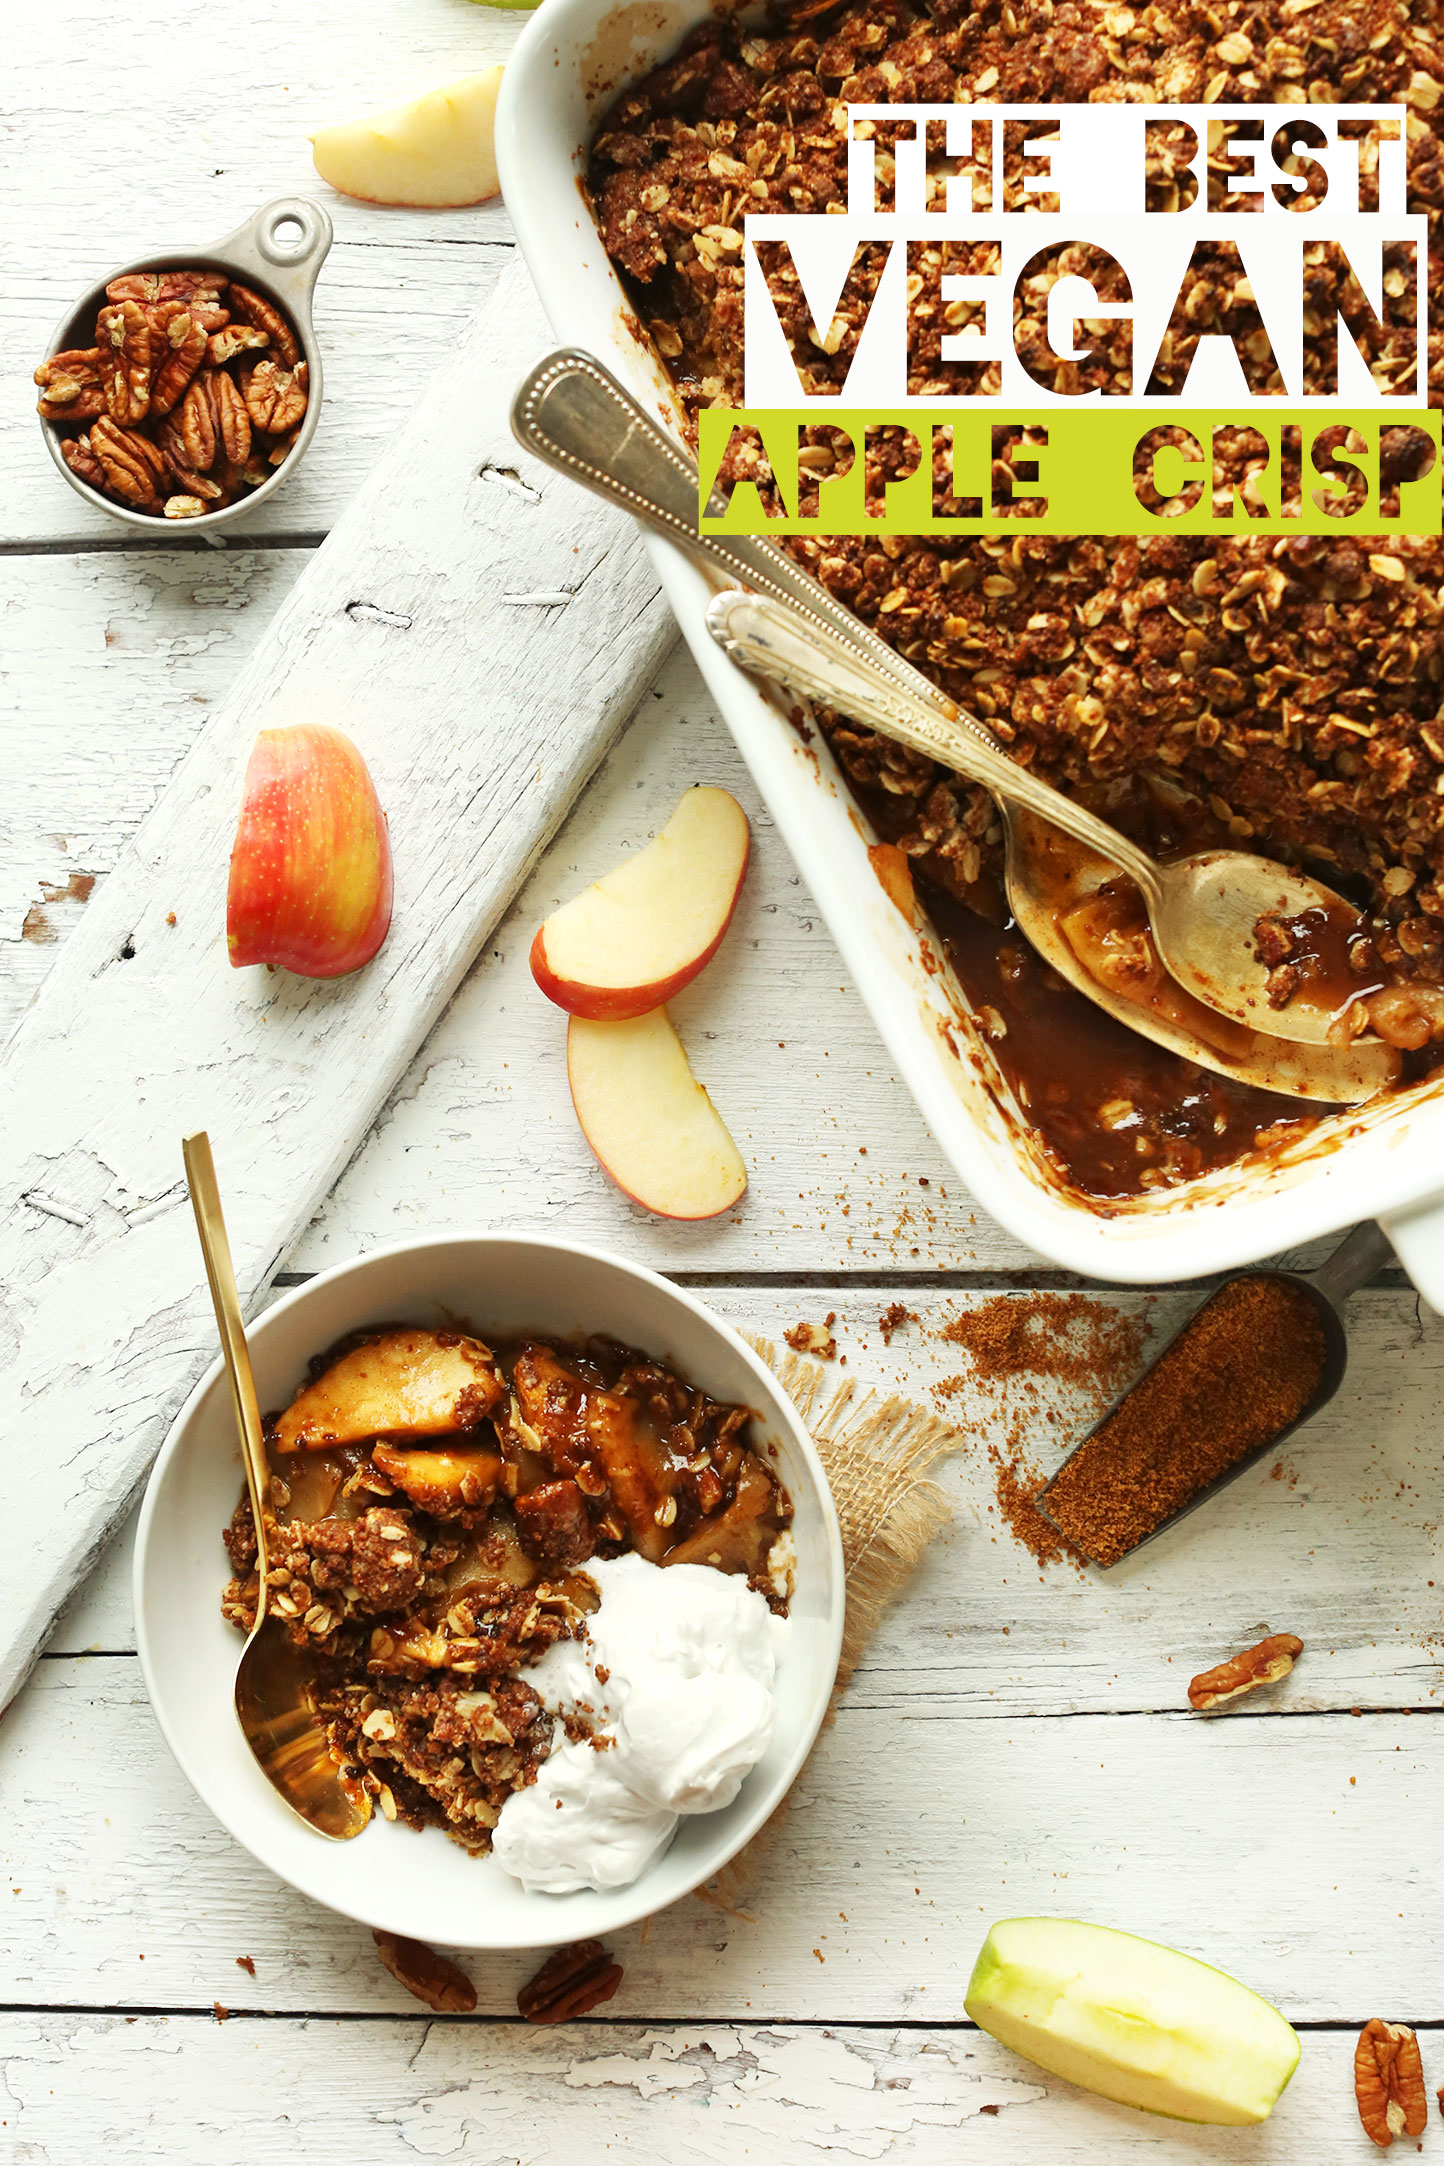 The Absolute BEST VEGAN Apple Crisp! 1 Bowl and NATURALLY SWEETENED! Tender, caramelized, SO crispy. #vegan #apples #fall #dessert #recipe #minimalistbaker